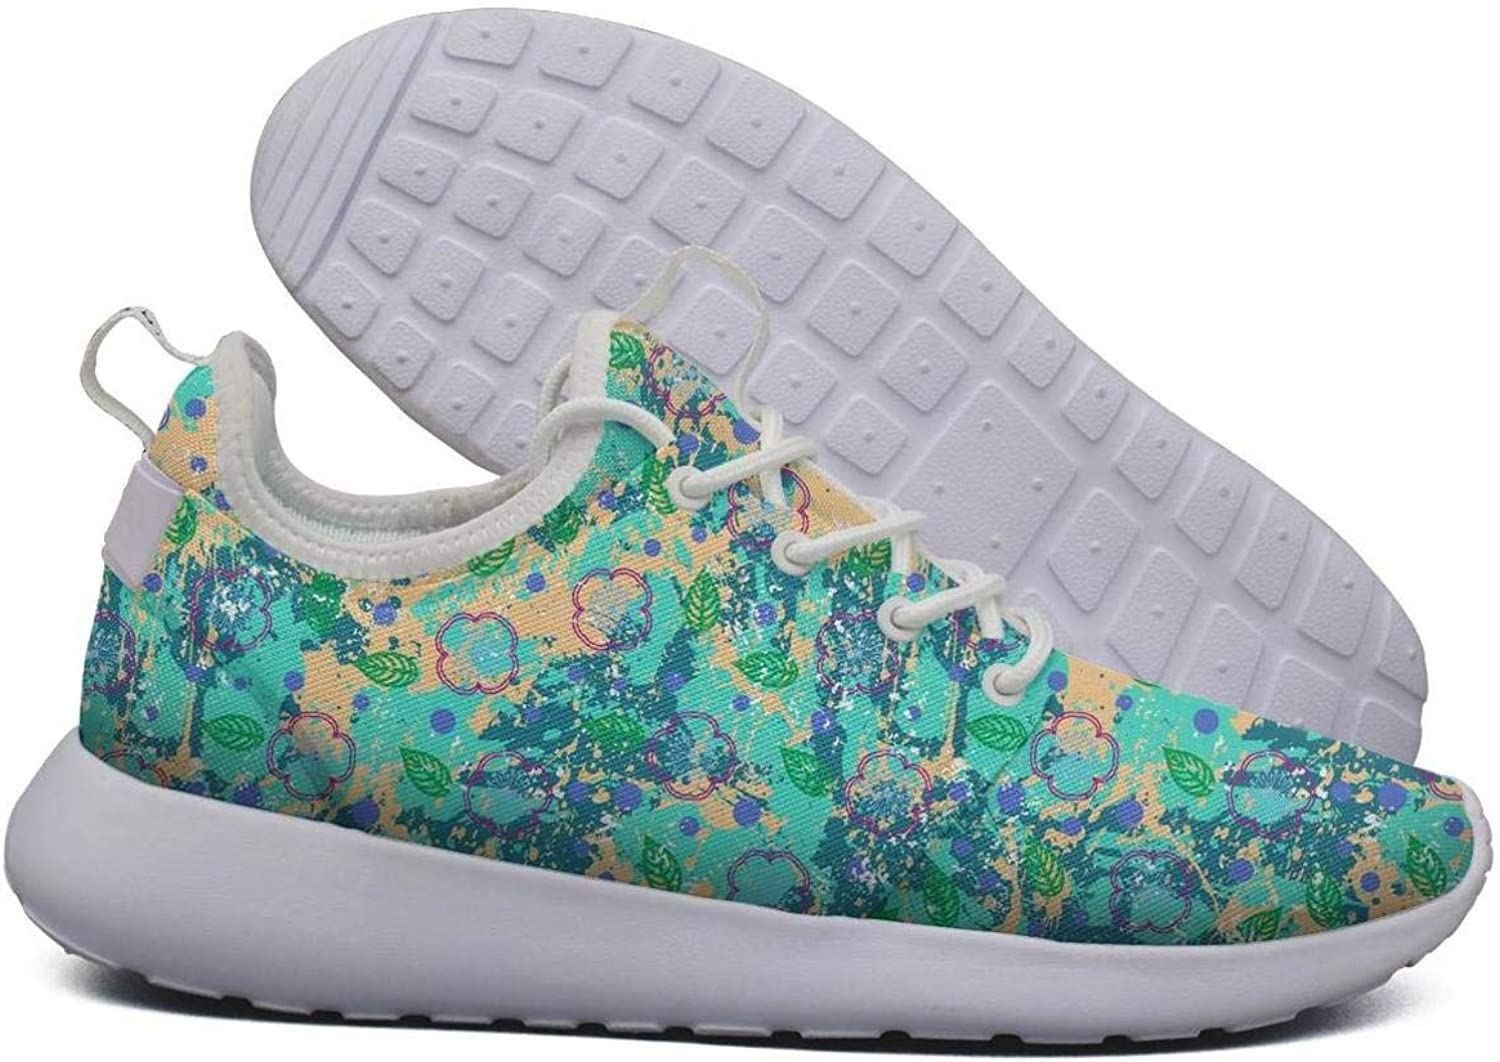 Opr7 Fusion Exotic Tropical Palm Lightweight Running shoes for Women Sneaker Sport Shock Absorbing